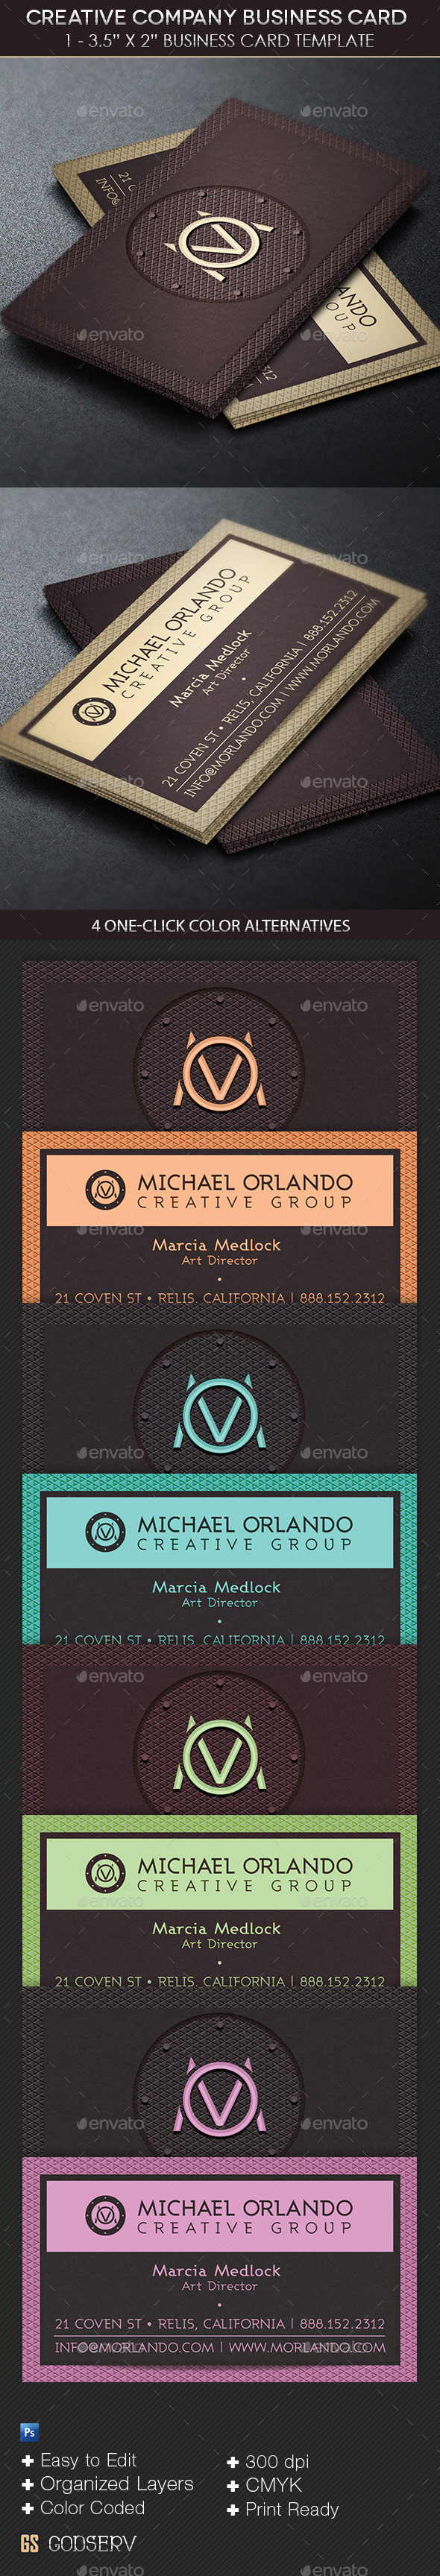 Creative company business card template by godserv graphicriver creative company business card template industry specific business cards reheart Image collections